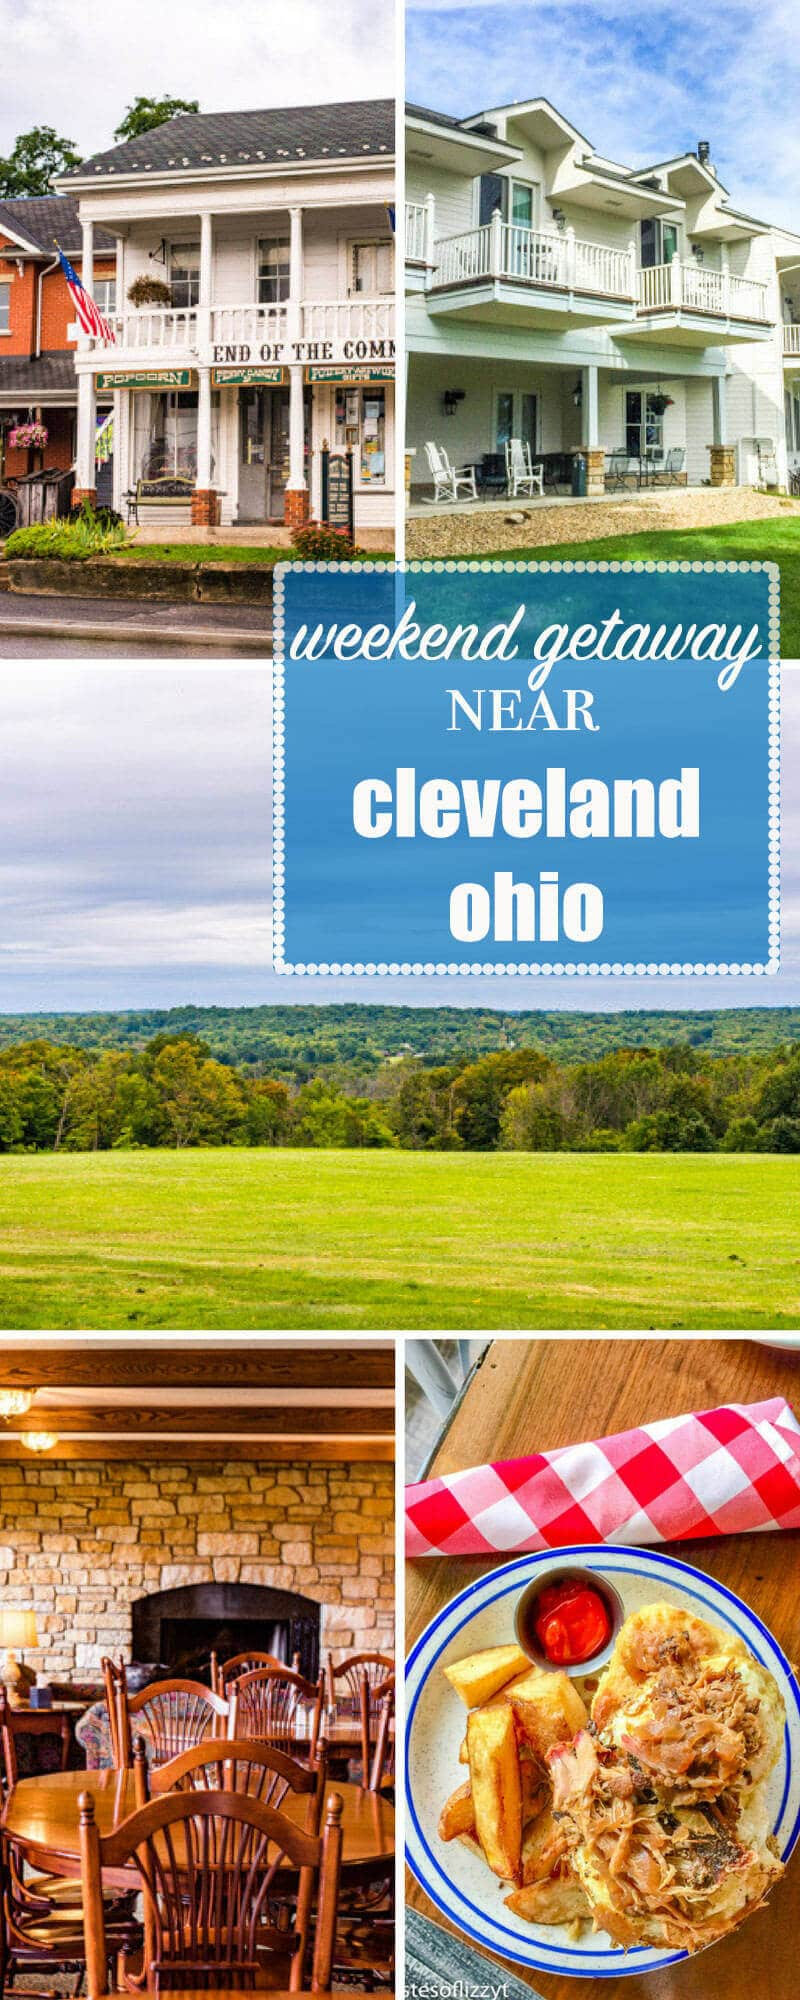 If you're looking for a weekend getaway near Cleveland, Ohio, look no further than the Red Maple Inn in Burton, Ohio's beautiful countryside. Weekend Getaway Near Cleveland Ohio {Best Food and Where to Stay}